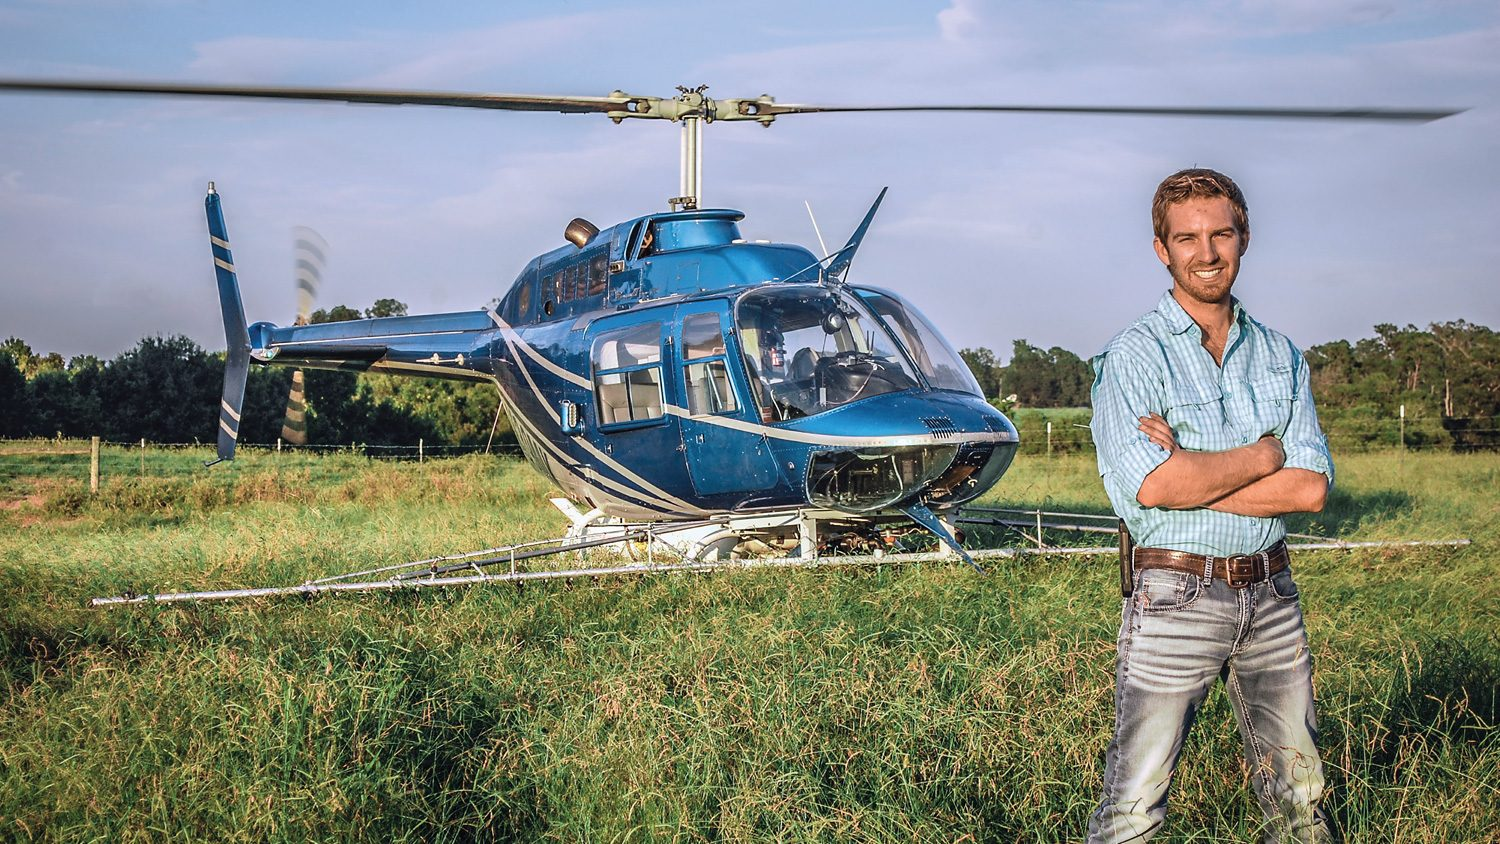 CALS Agricultural Institute graduate Jacob Tarlton in a field with his helicopter.